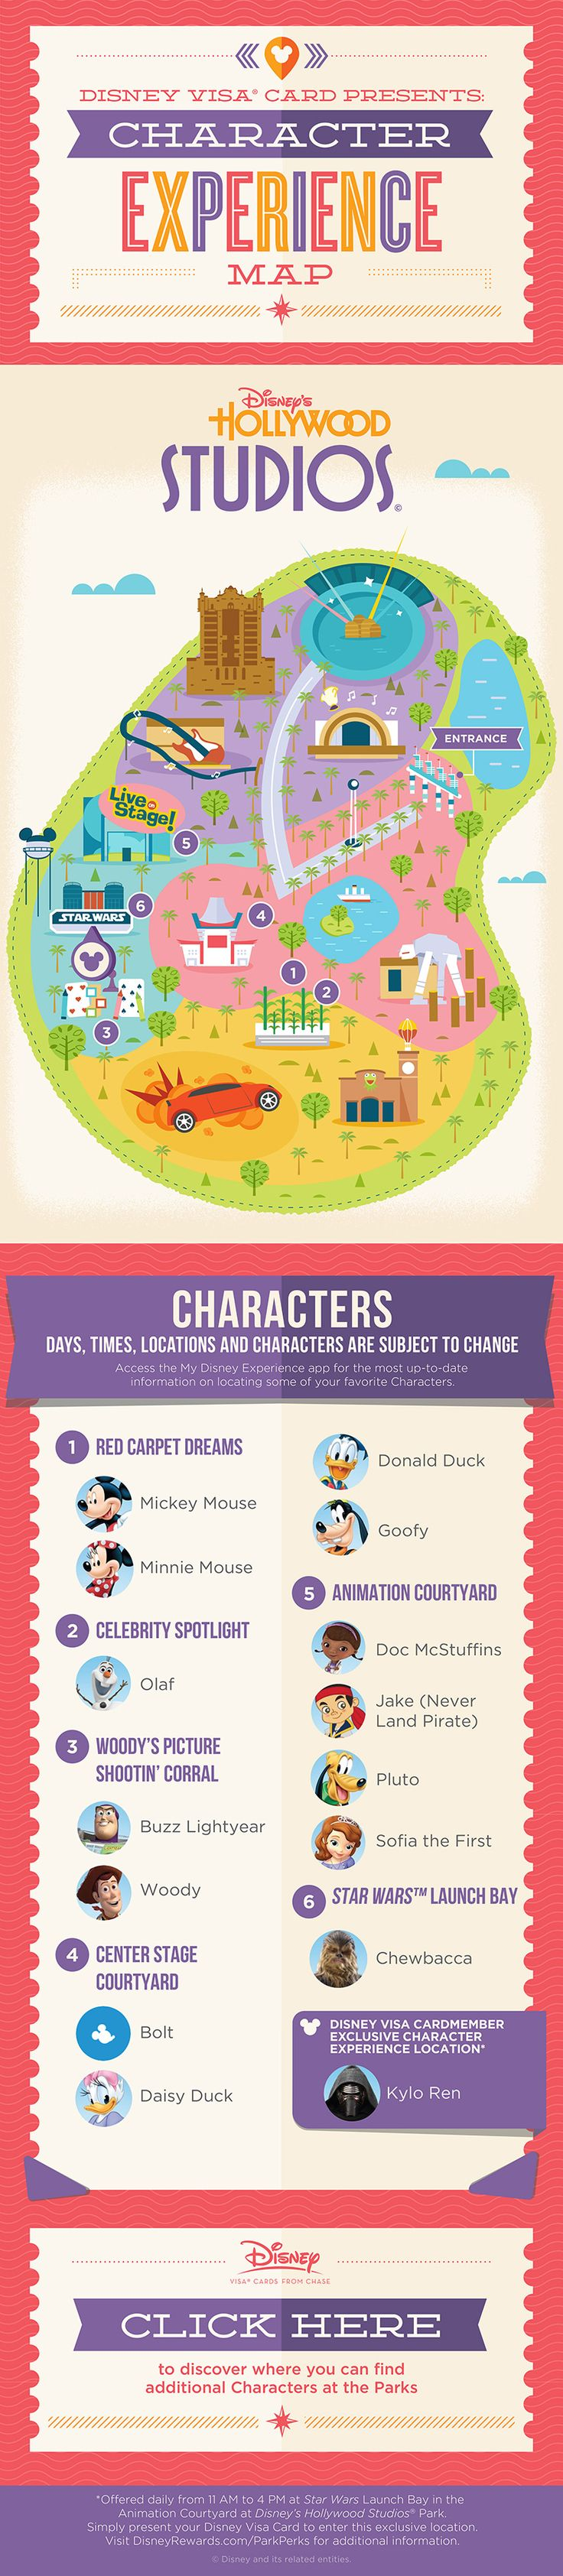 Disney's Hollywood Studios® Character Experience Guide